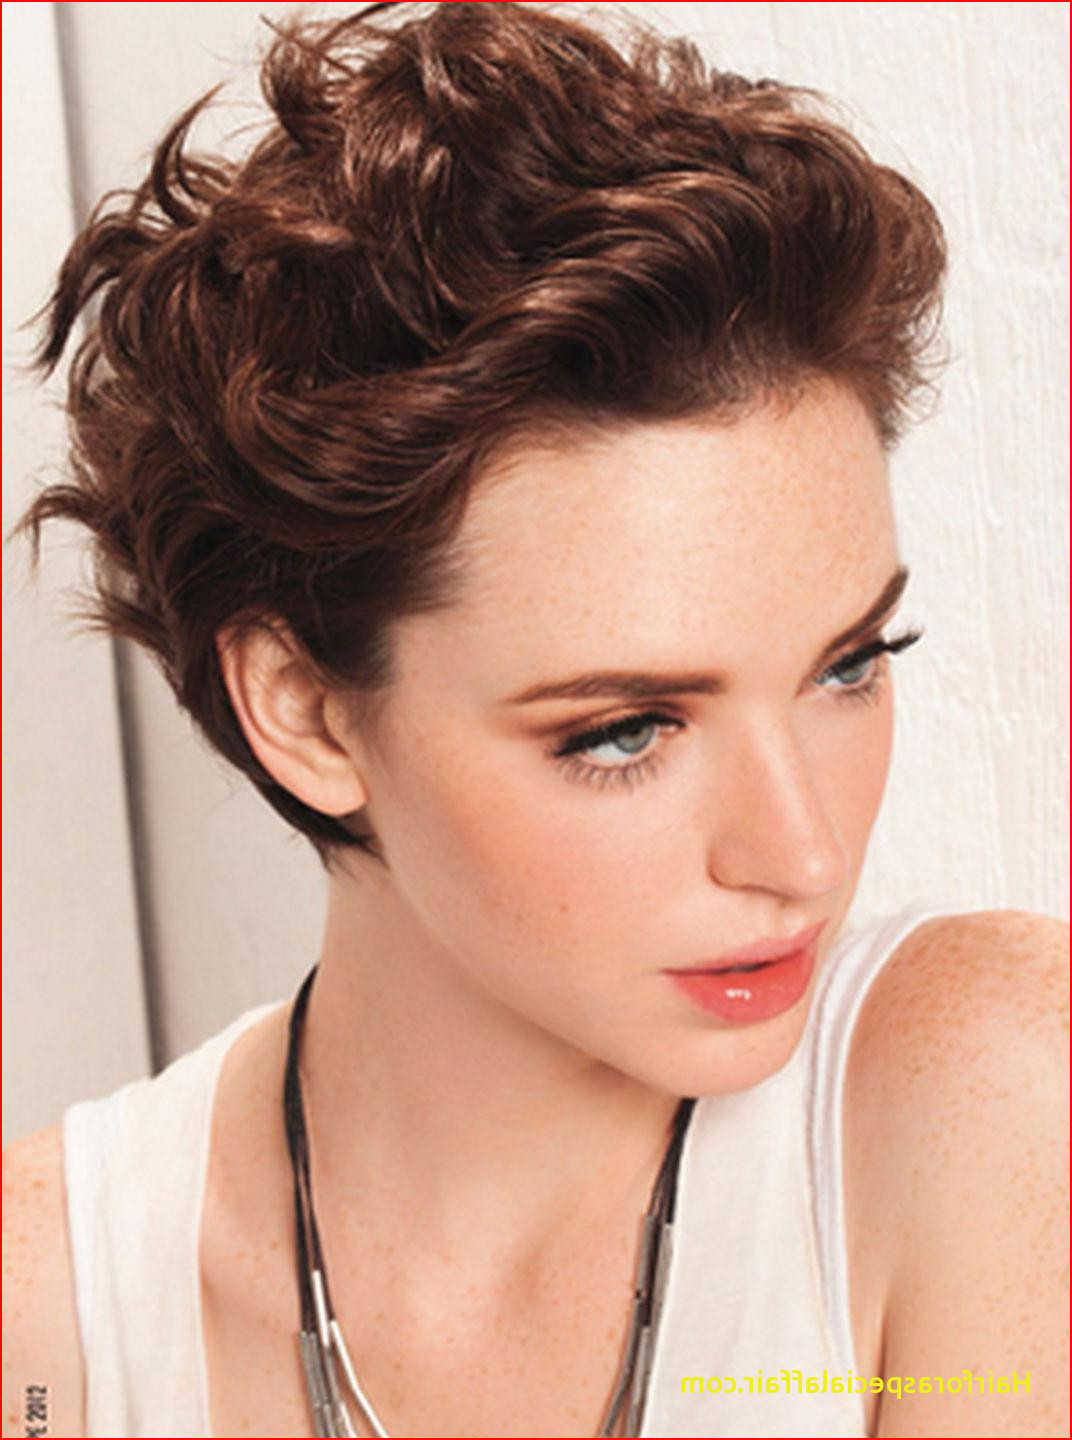 Short Haircuts For Women With Thick Wavy Hair Cute Short Haircuts In Short Haircuts Thick Wavy Hair (View 9 of 25)